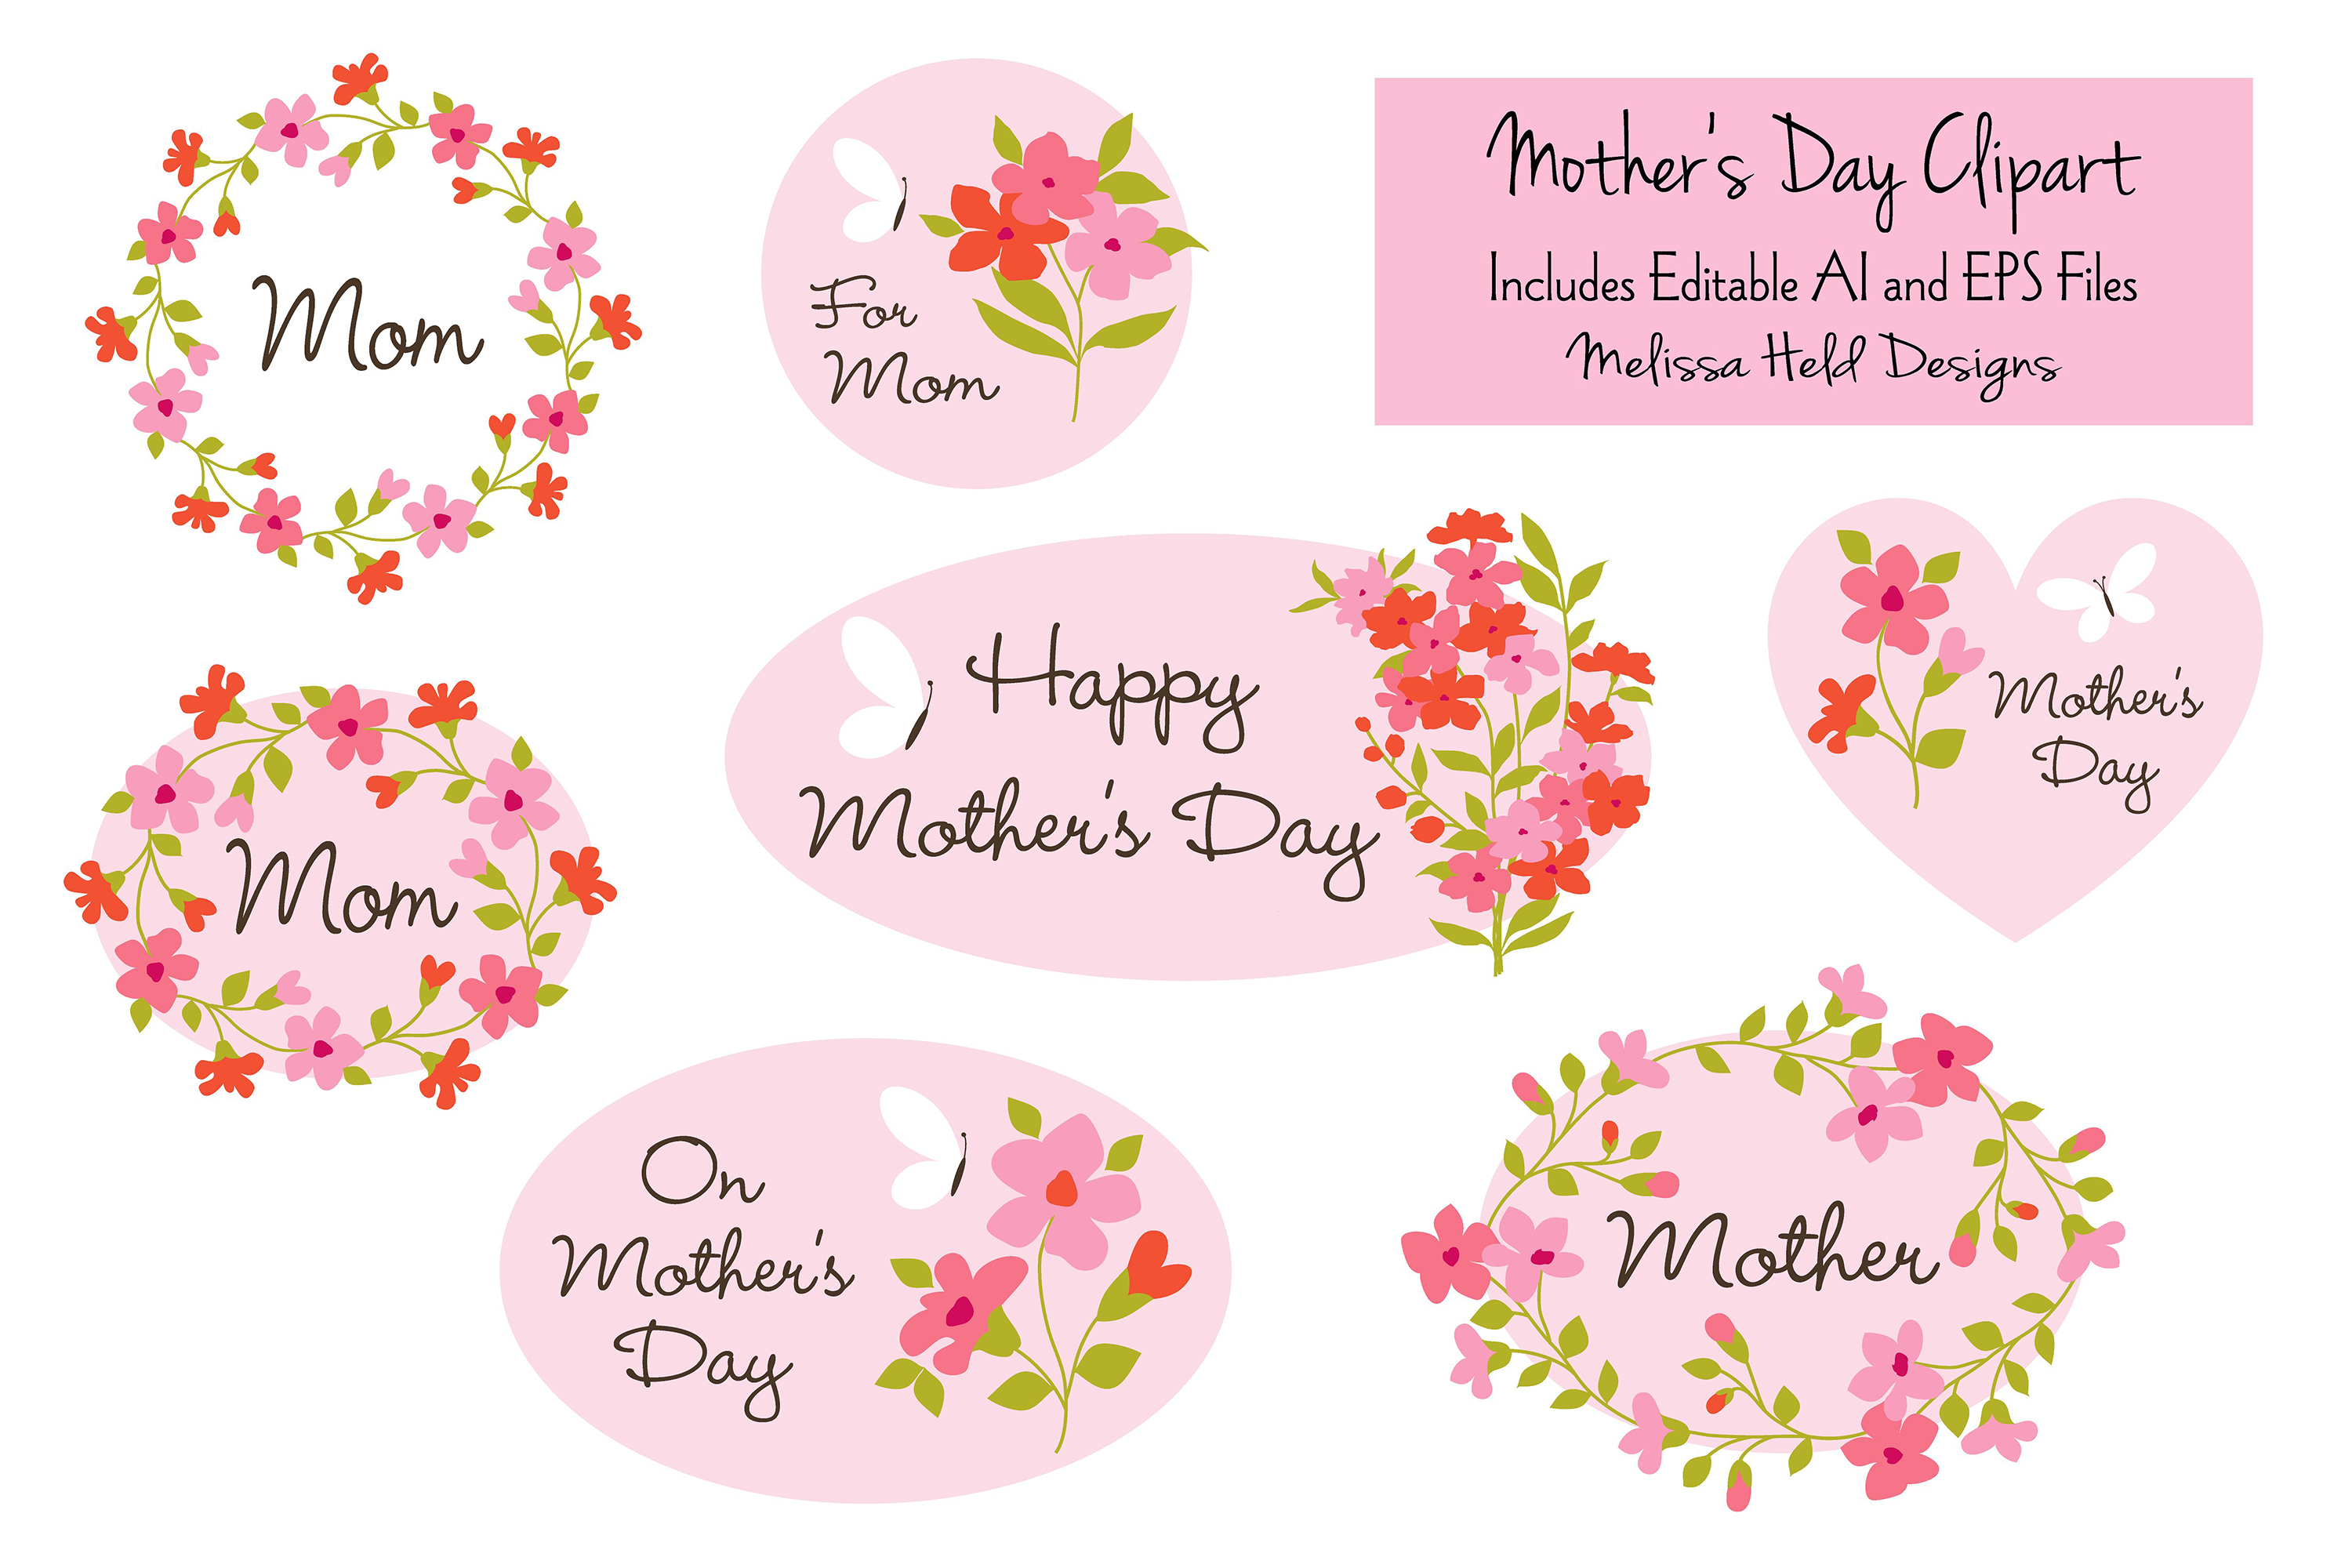 Mothers Day Clipart.